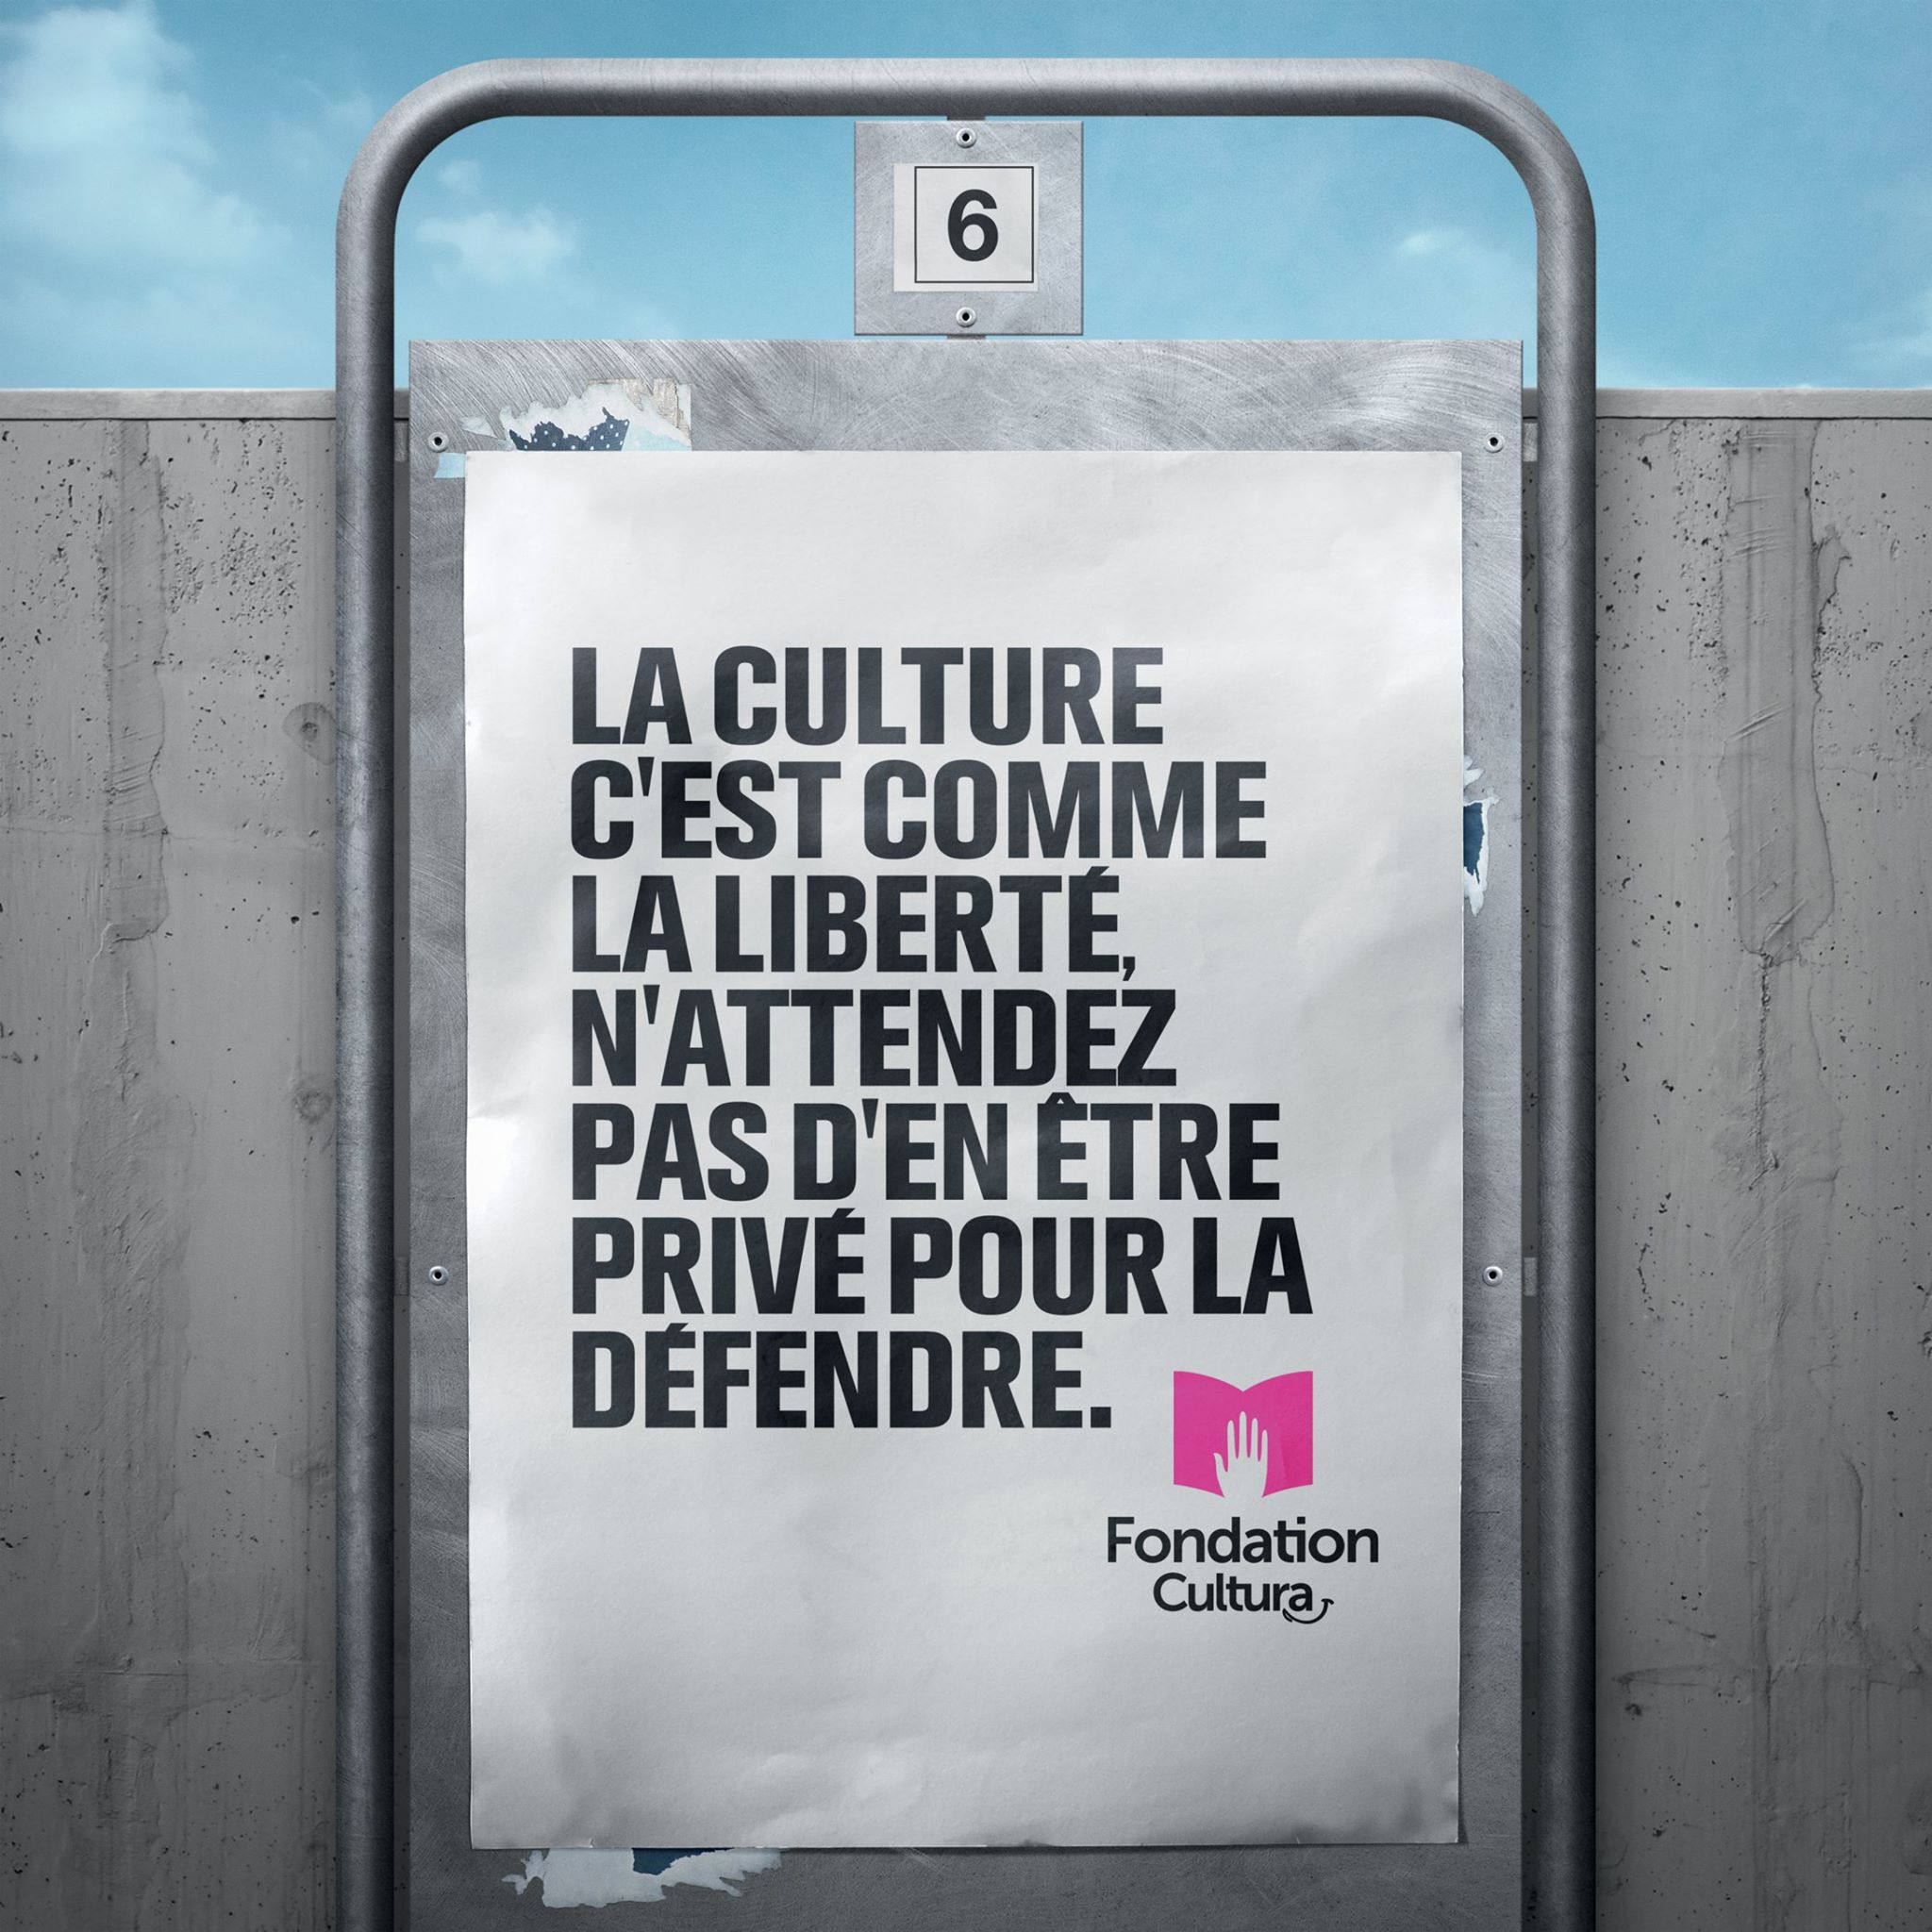 fondation-cultura-publicite-communication-affiche-la-culture-presidentielle-2017-candidats-agence-st-johns-2